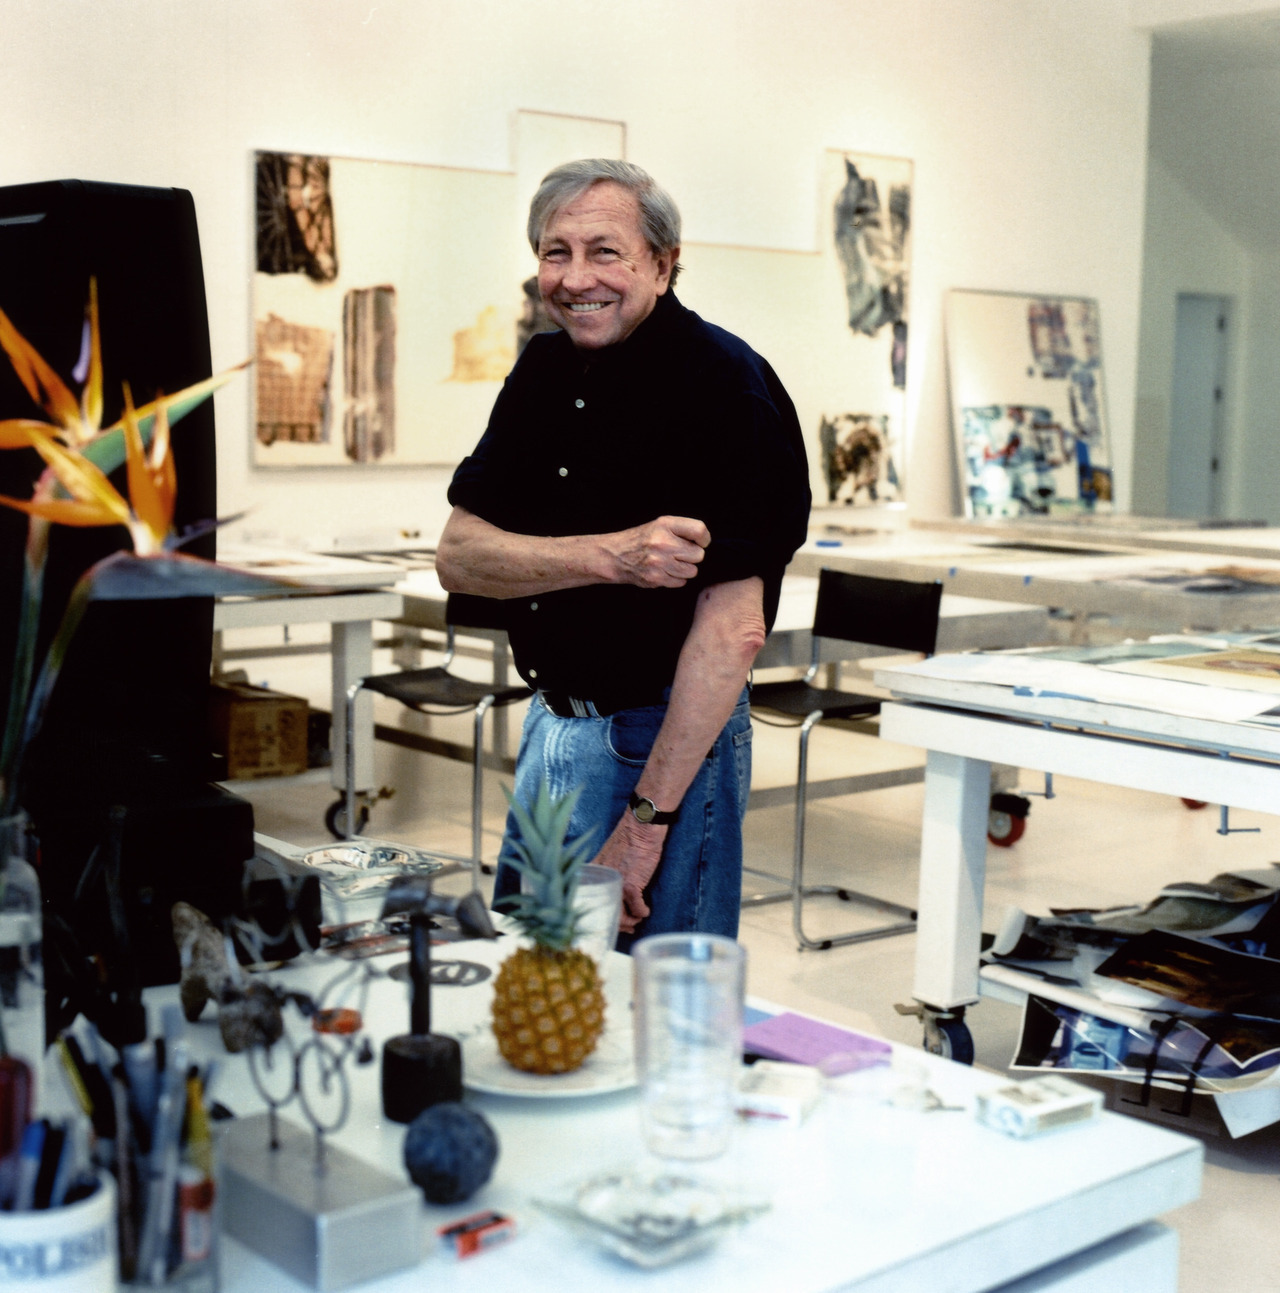 On the occasion of his birthday we remember the late Robert Rauschenberg, shown here in his studio.  The juxtaposition of different media he used and their interplay comprise Rauschenberg's chief interests, and throughout his career, his works have been marked by a sense of experimentation and chance. Photo Credits: © Estate of Robert Rauschenberg/Licensed by VAGA, New York, NY / Photo by: Ed Chappell, 1999